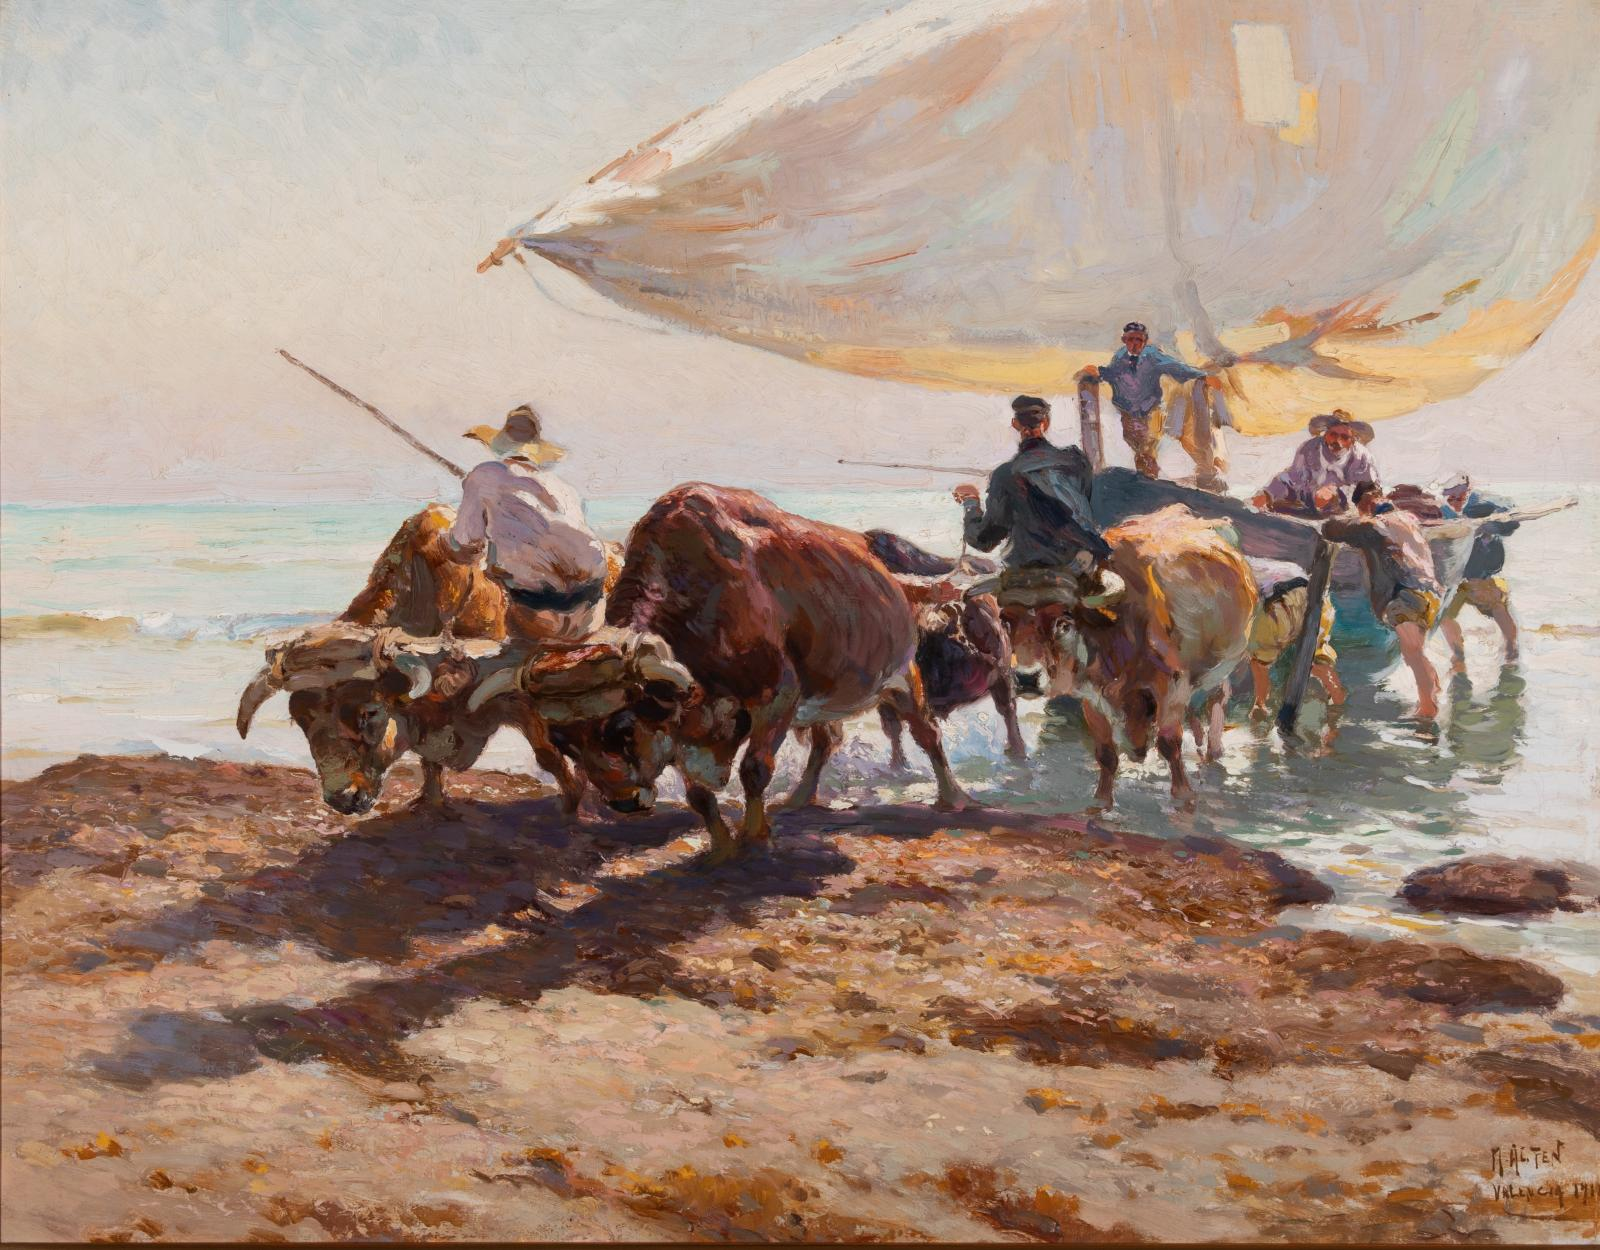 Oil on canvas painting of oxen assisting fisherman by pulling a boat with a large white sail.